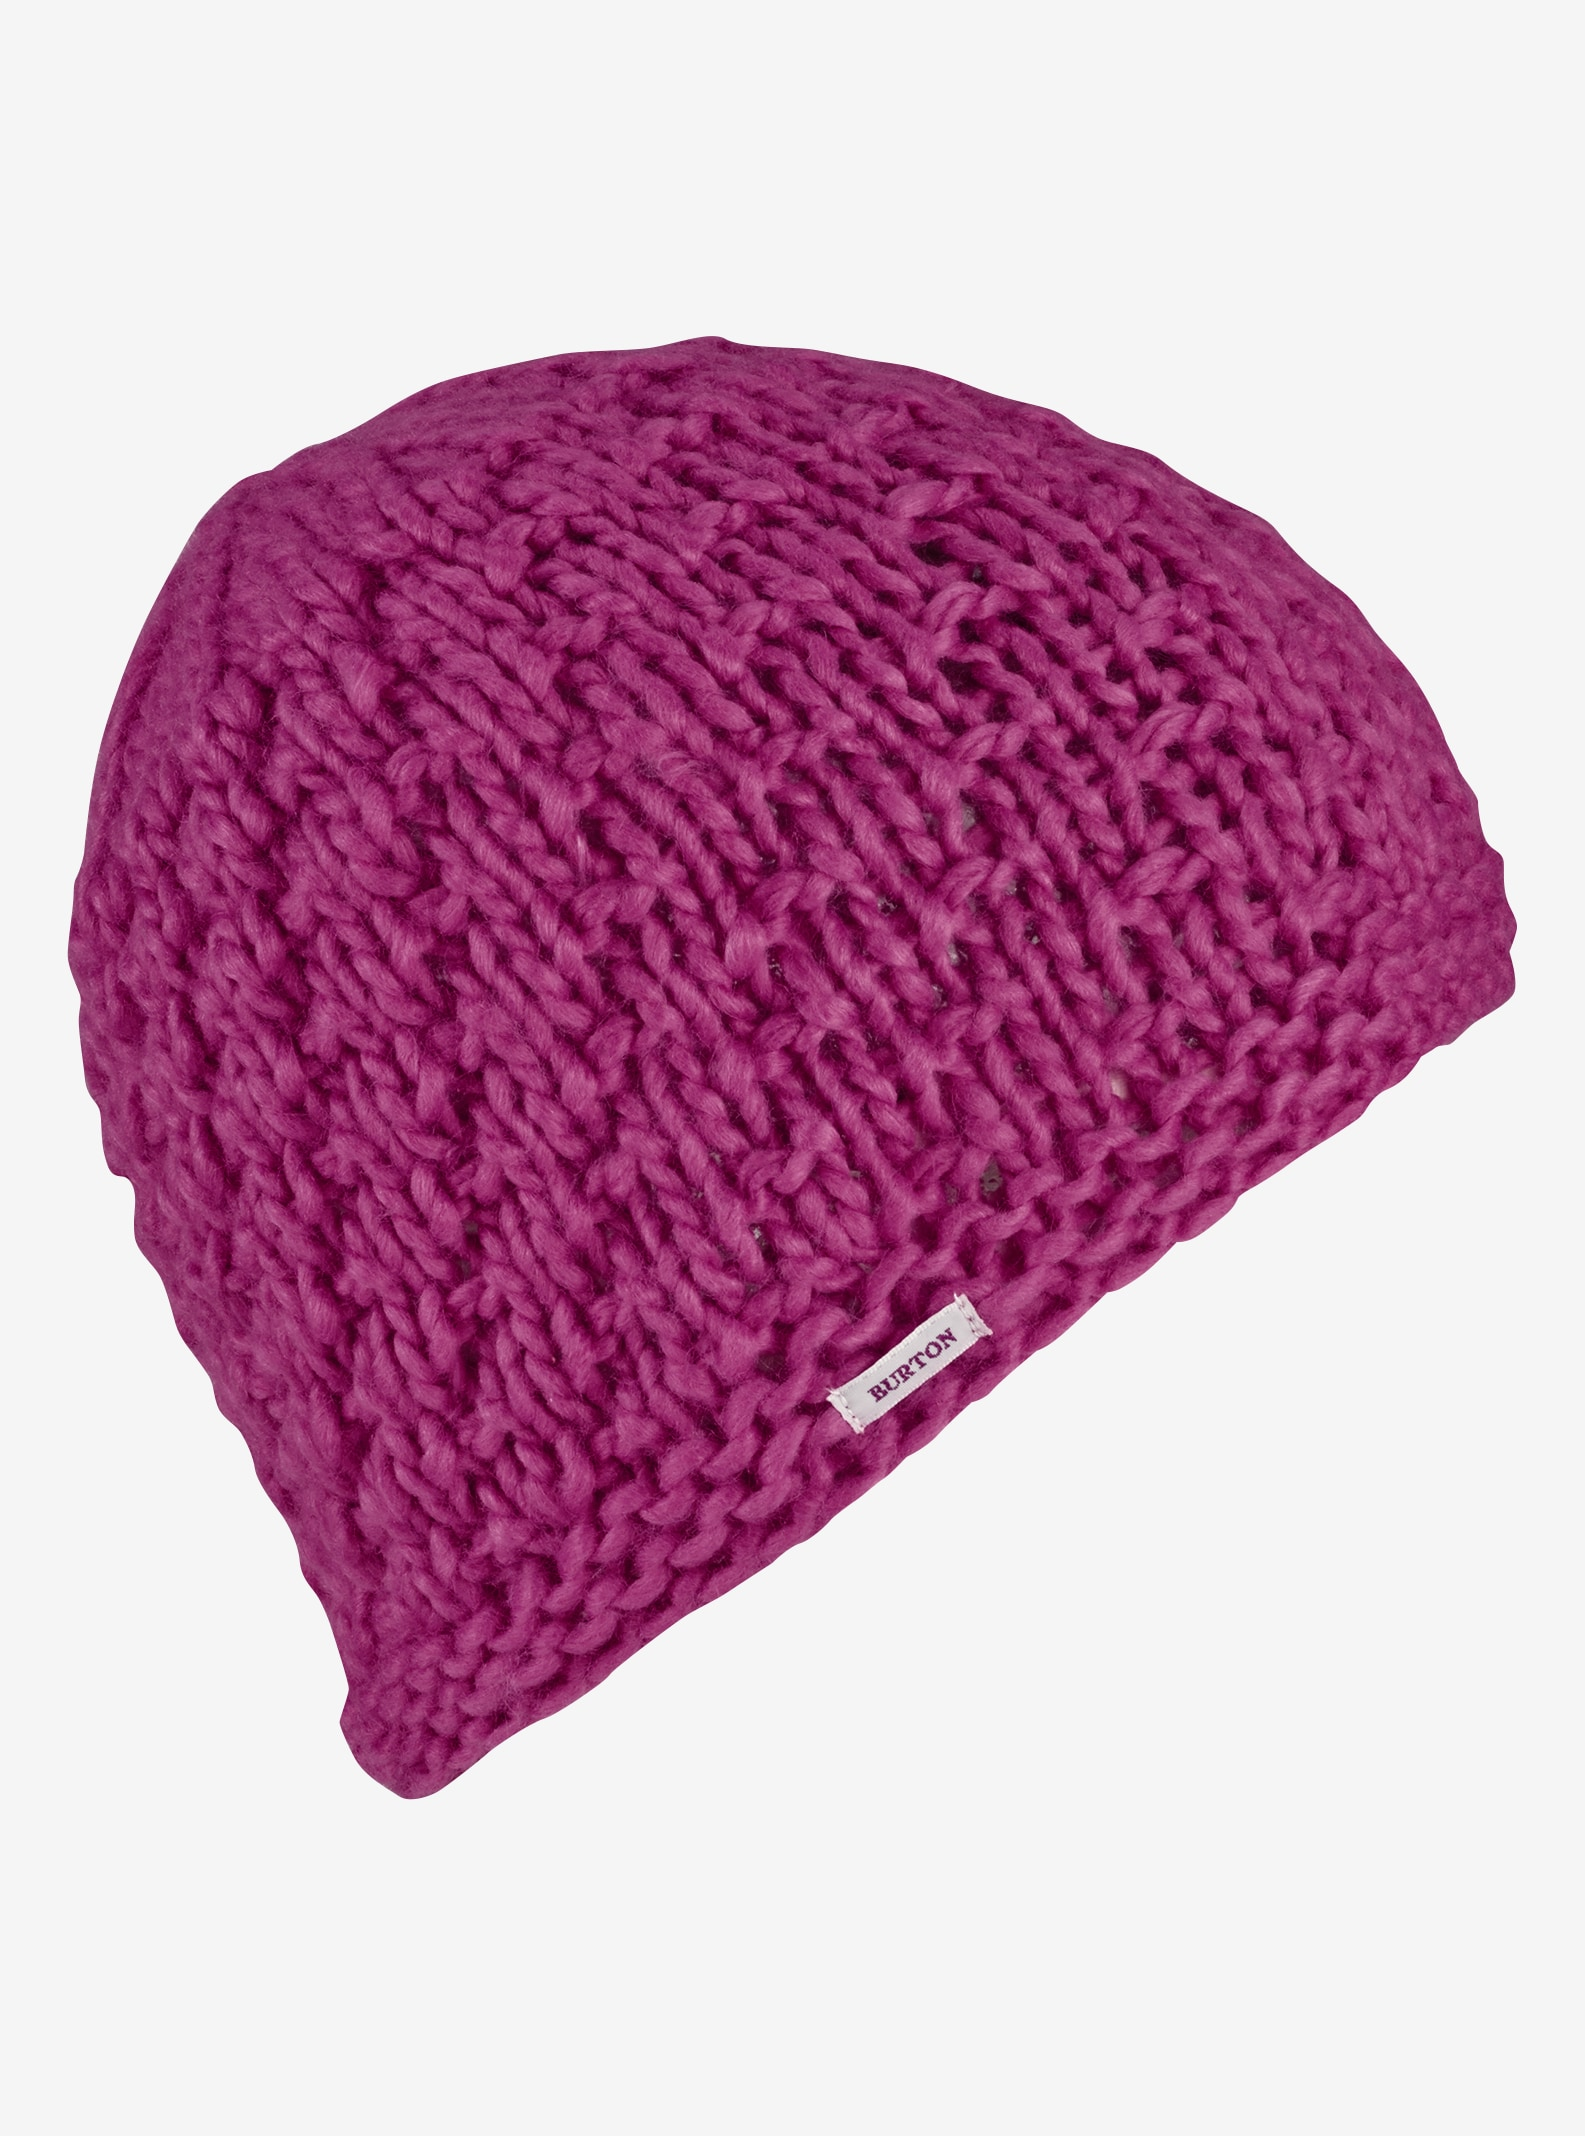 Girls' Burton Lil Bertha Beanie shown in Grapeseed